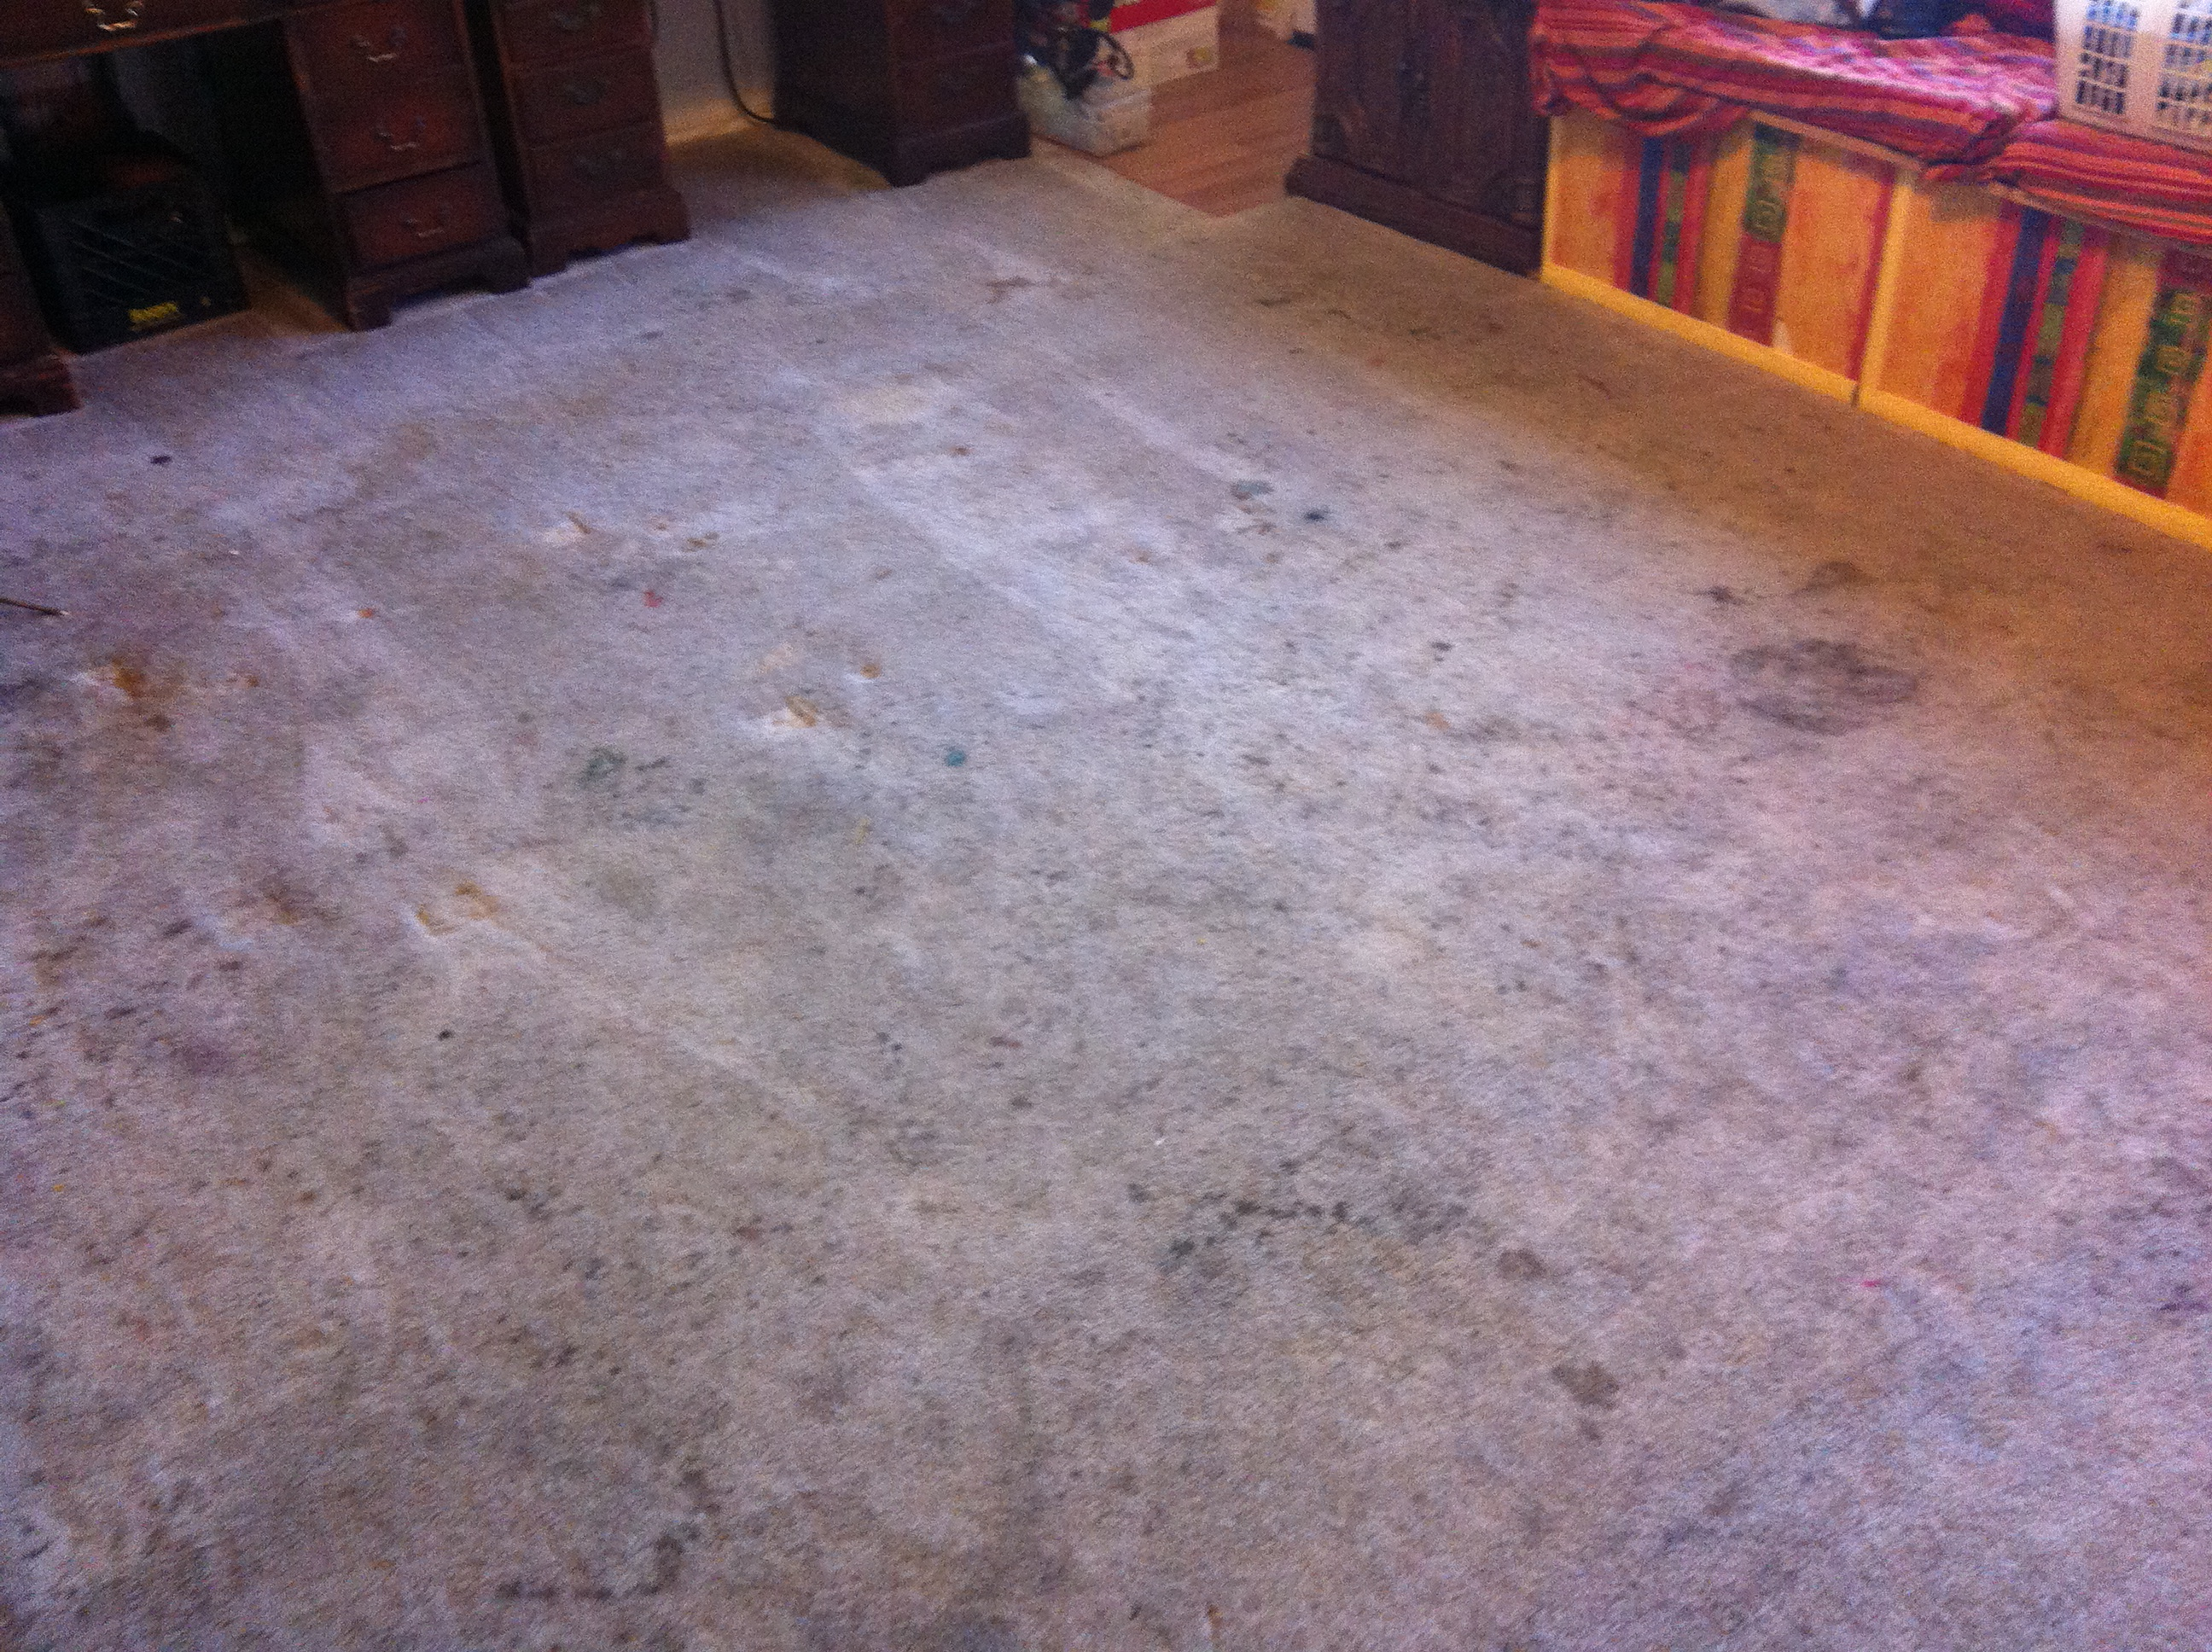 How To Clean Heavily Stained Carpet Nrtradiant